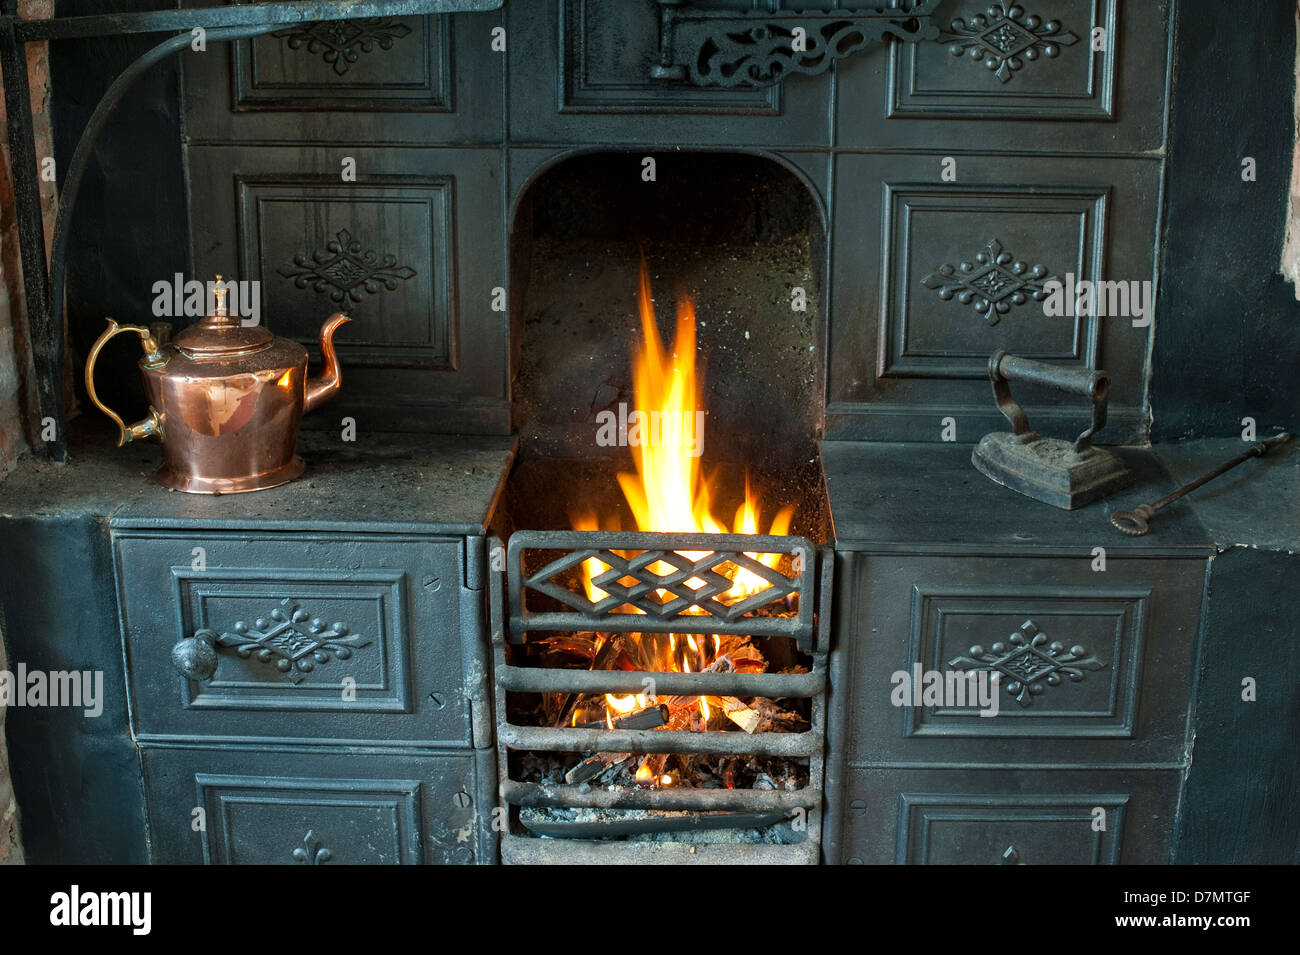 Cast Iron Range Fireplace In A Shropshire Cottage Uk Stock